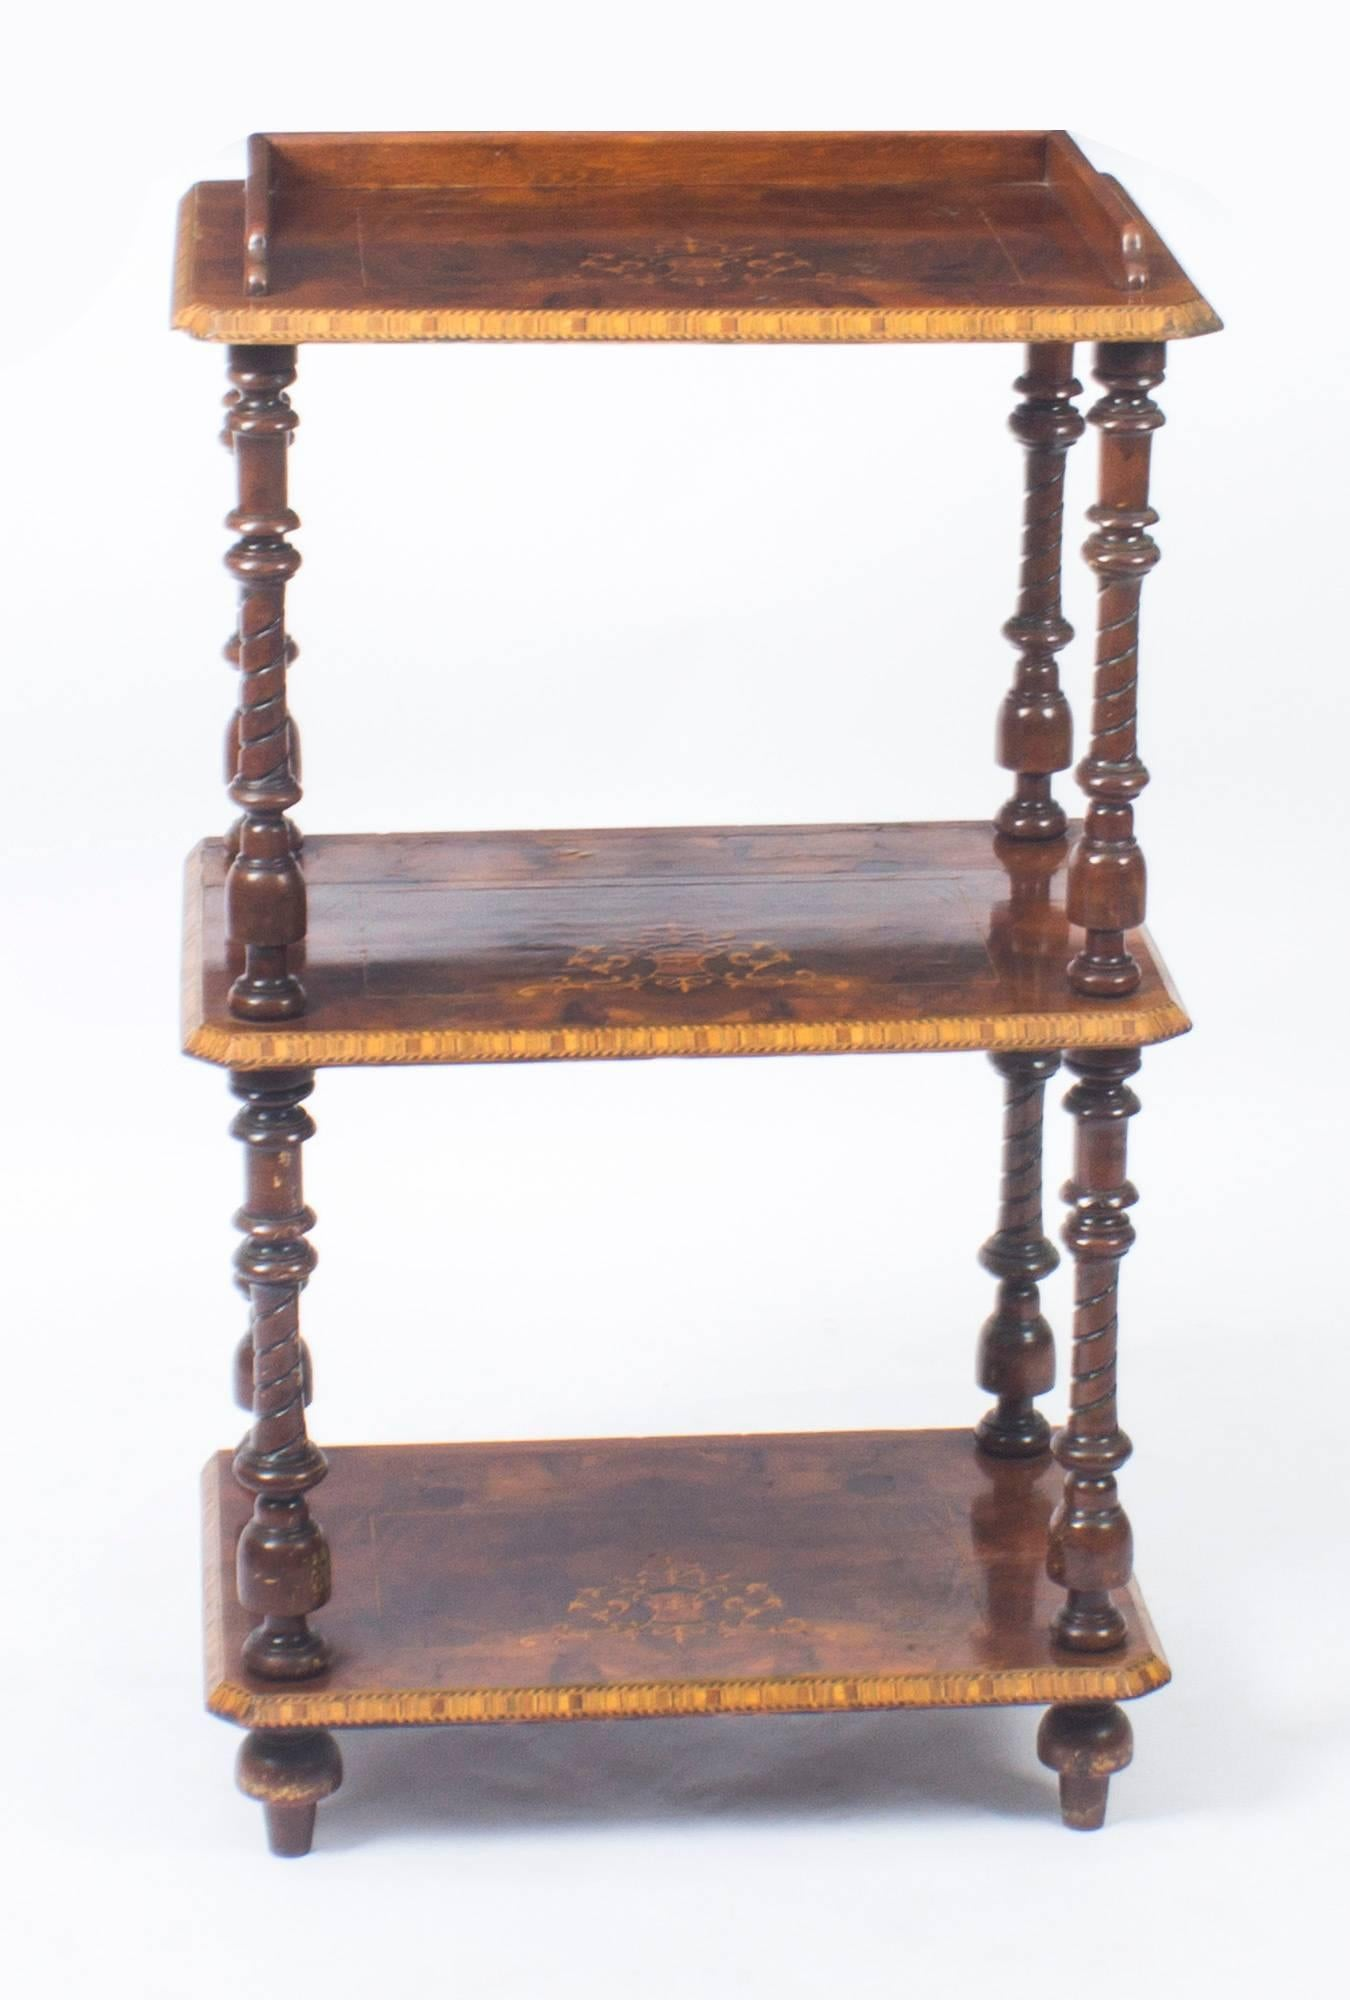 There Is No Mistaking The Unique Quality And Elegant Design Of This  Victorian Whatnot, Circa